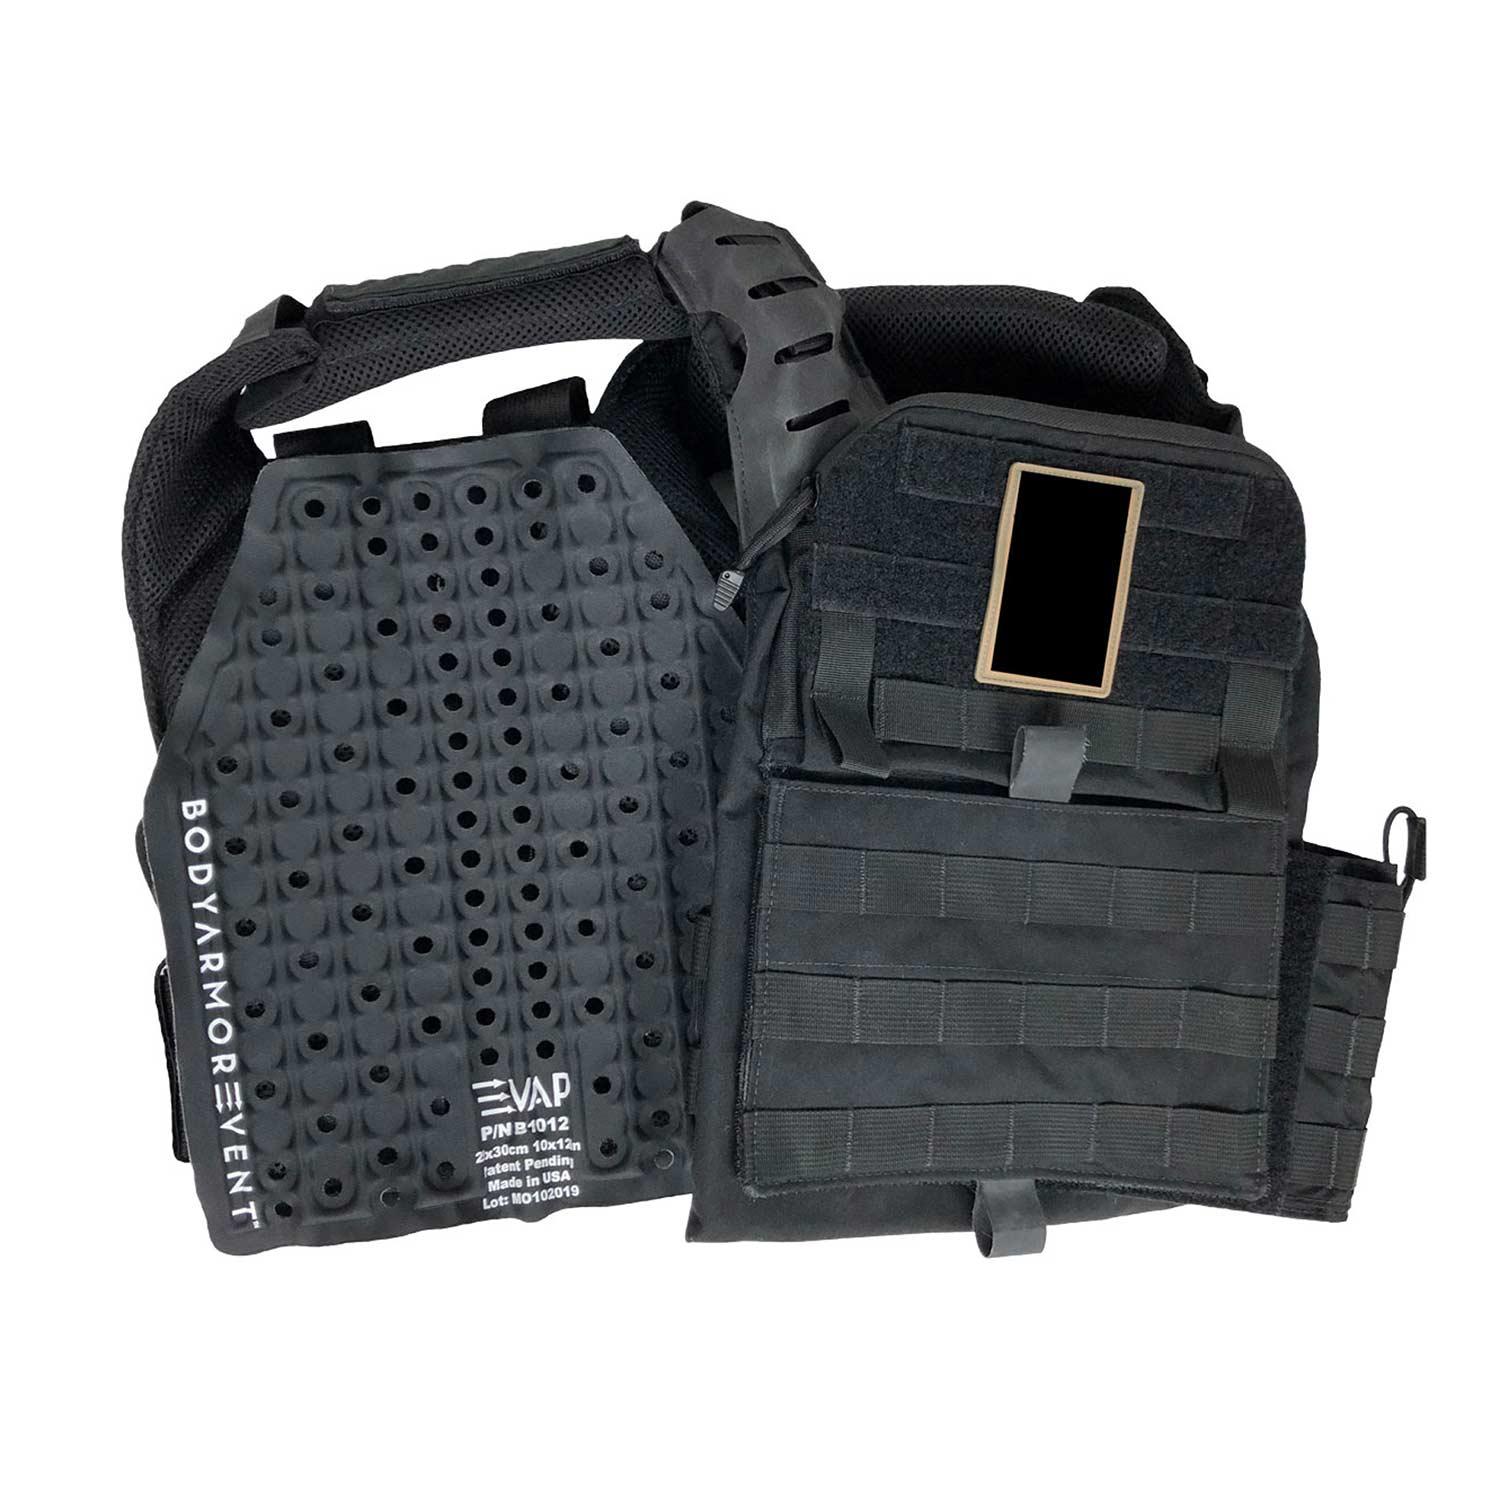 BODY ARMOR VENT Retrofit Kit